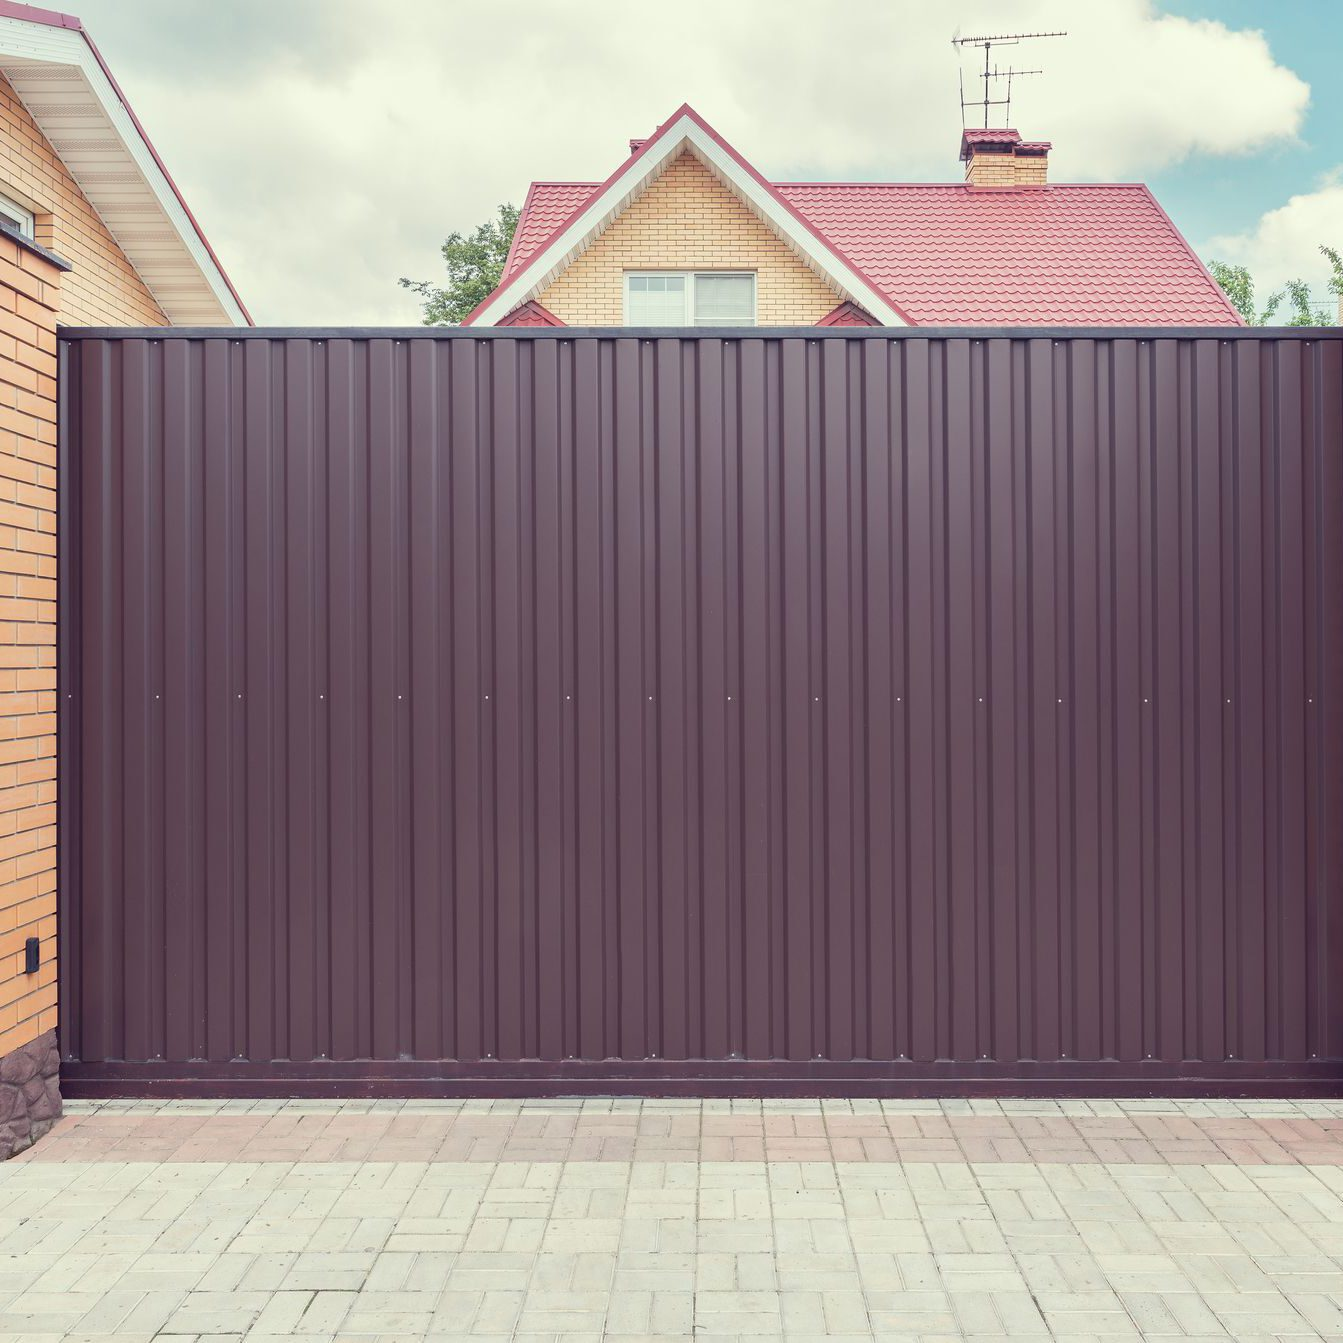 Top Fence Company in Sheep Mountain, Nevada